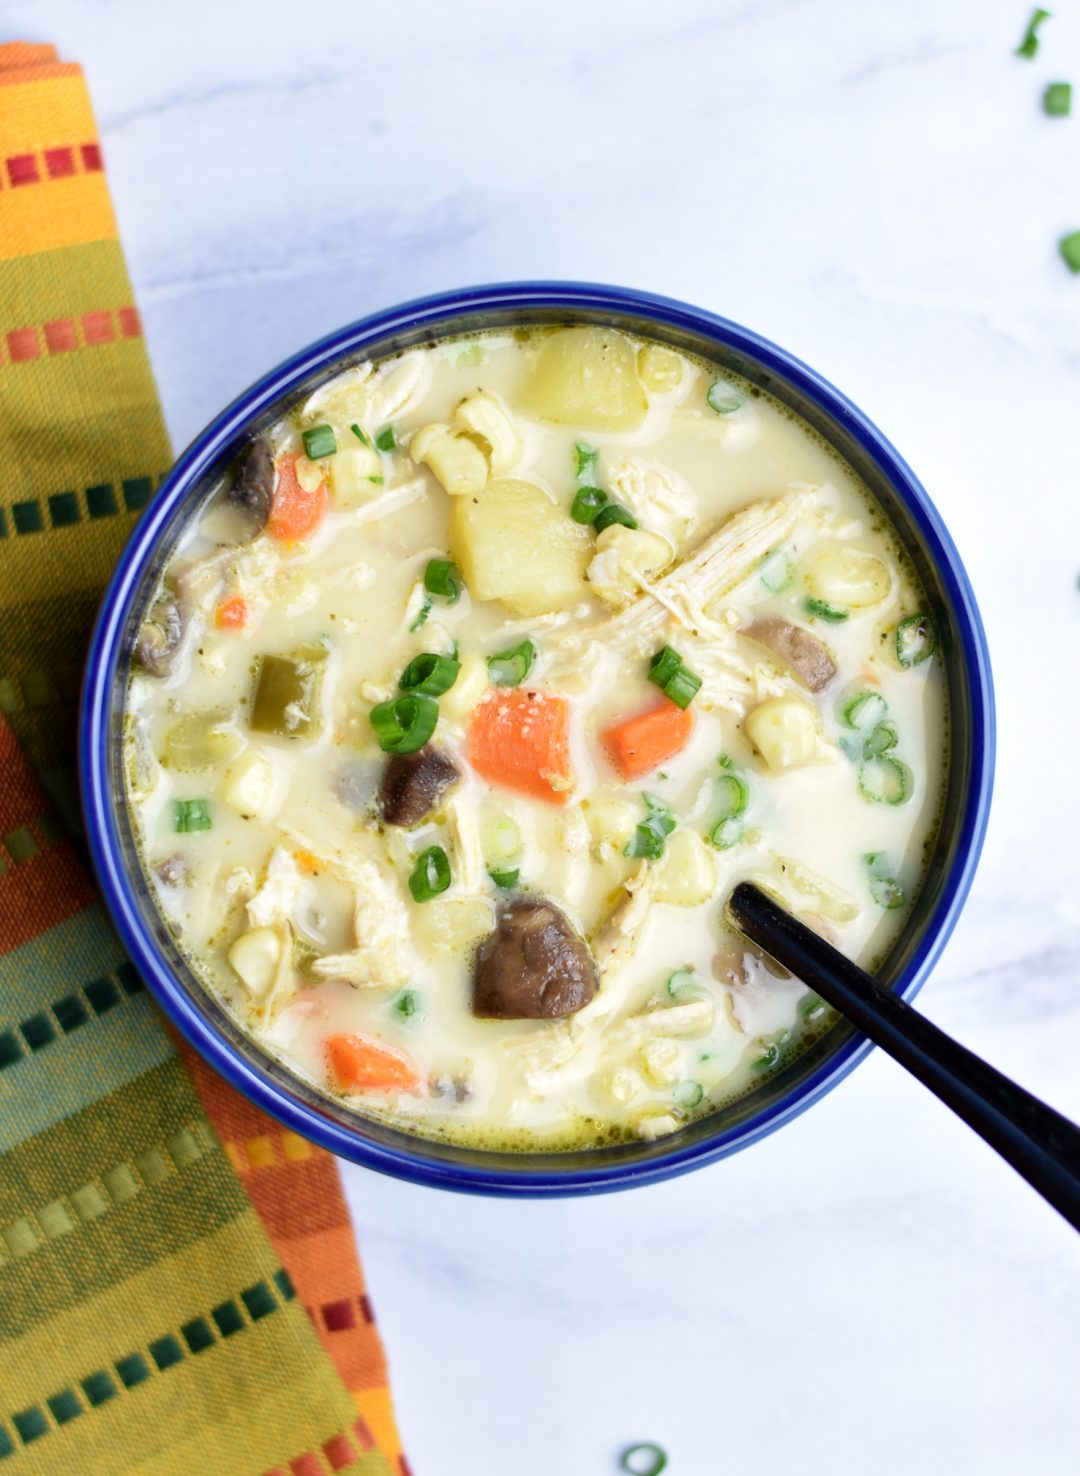 Gluten-Free Corn and Chicken Chowder in instant pot by Spice Cravings. Creamy, sweet, hearty and pure deliciousness in a bowl, that's how I would describe chowder. Enjoy in the summer or the winter by the fireplace on a cold winter night with a bowl of this Gluten-Free Corn & Chicken Chowder! This recipe reduces the carbs and goes gluten-free by removing the roux. #food #foodie #foodblogger #delicious #recipe #instantpot #recipes #easyrecipe #cuisine #30minutemeal #instagood #foodphotography #tasty